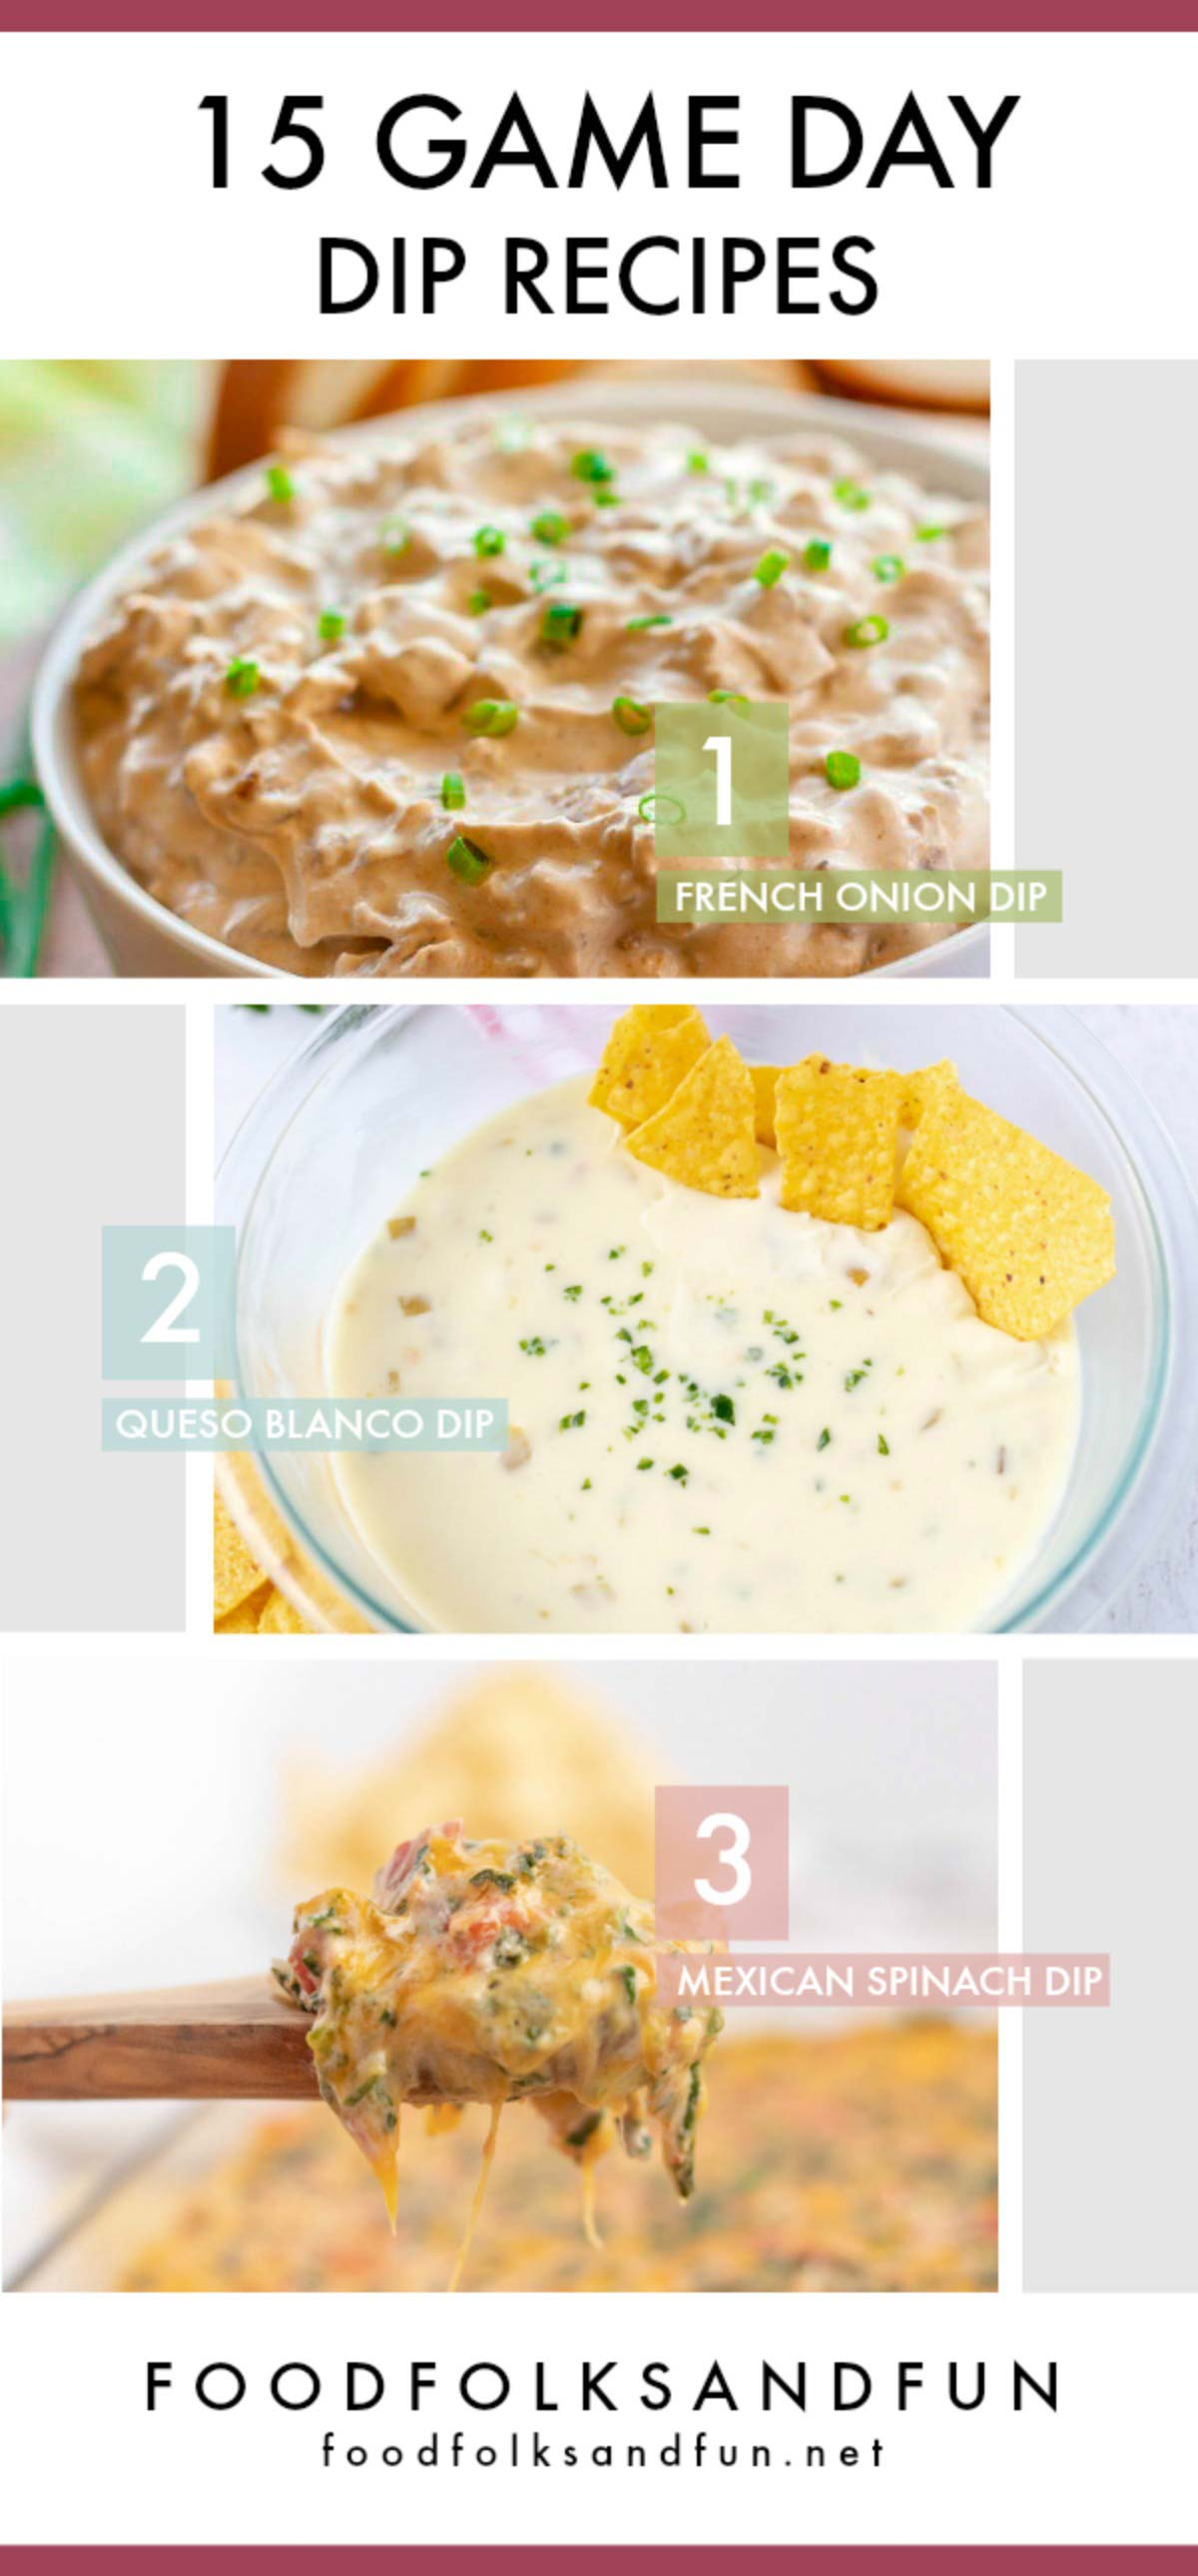 This dip recipes roundup has 15 dip recipes for game day, parties, and holidays that are sure to please! There are slow cooker dips, make-ahead dips, and more!  via @foodfolksandfun